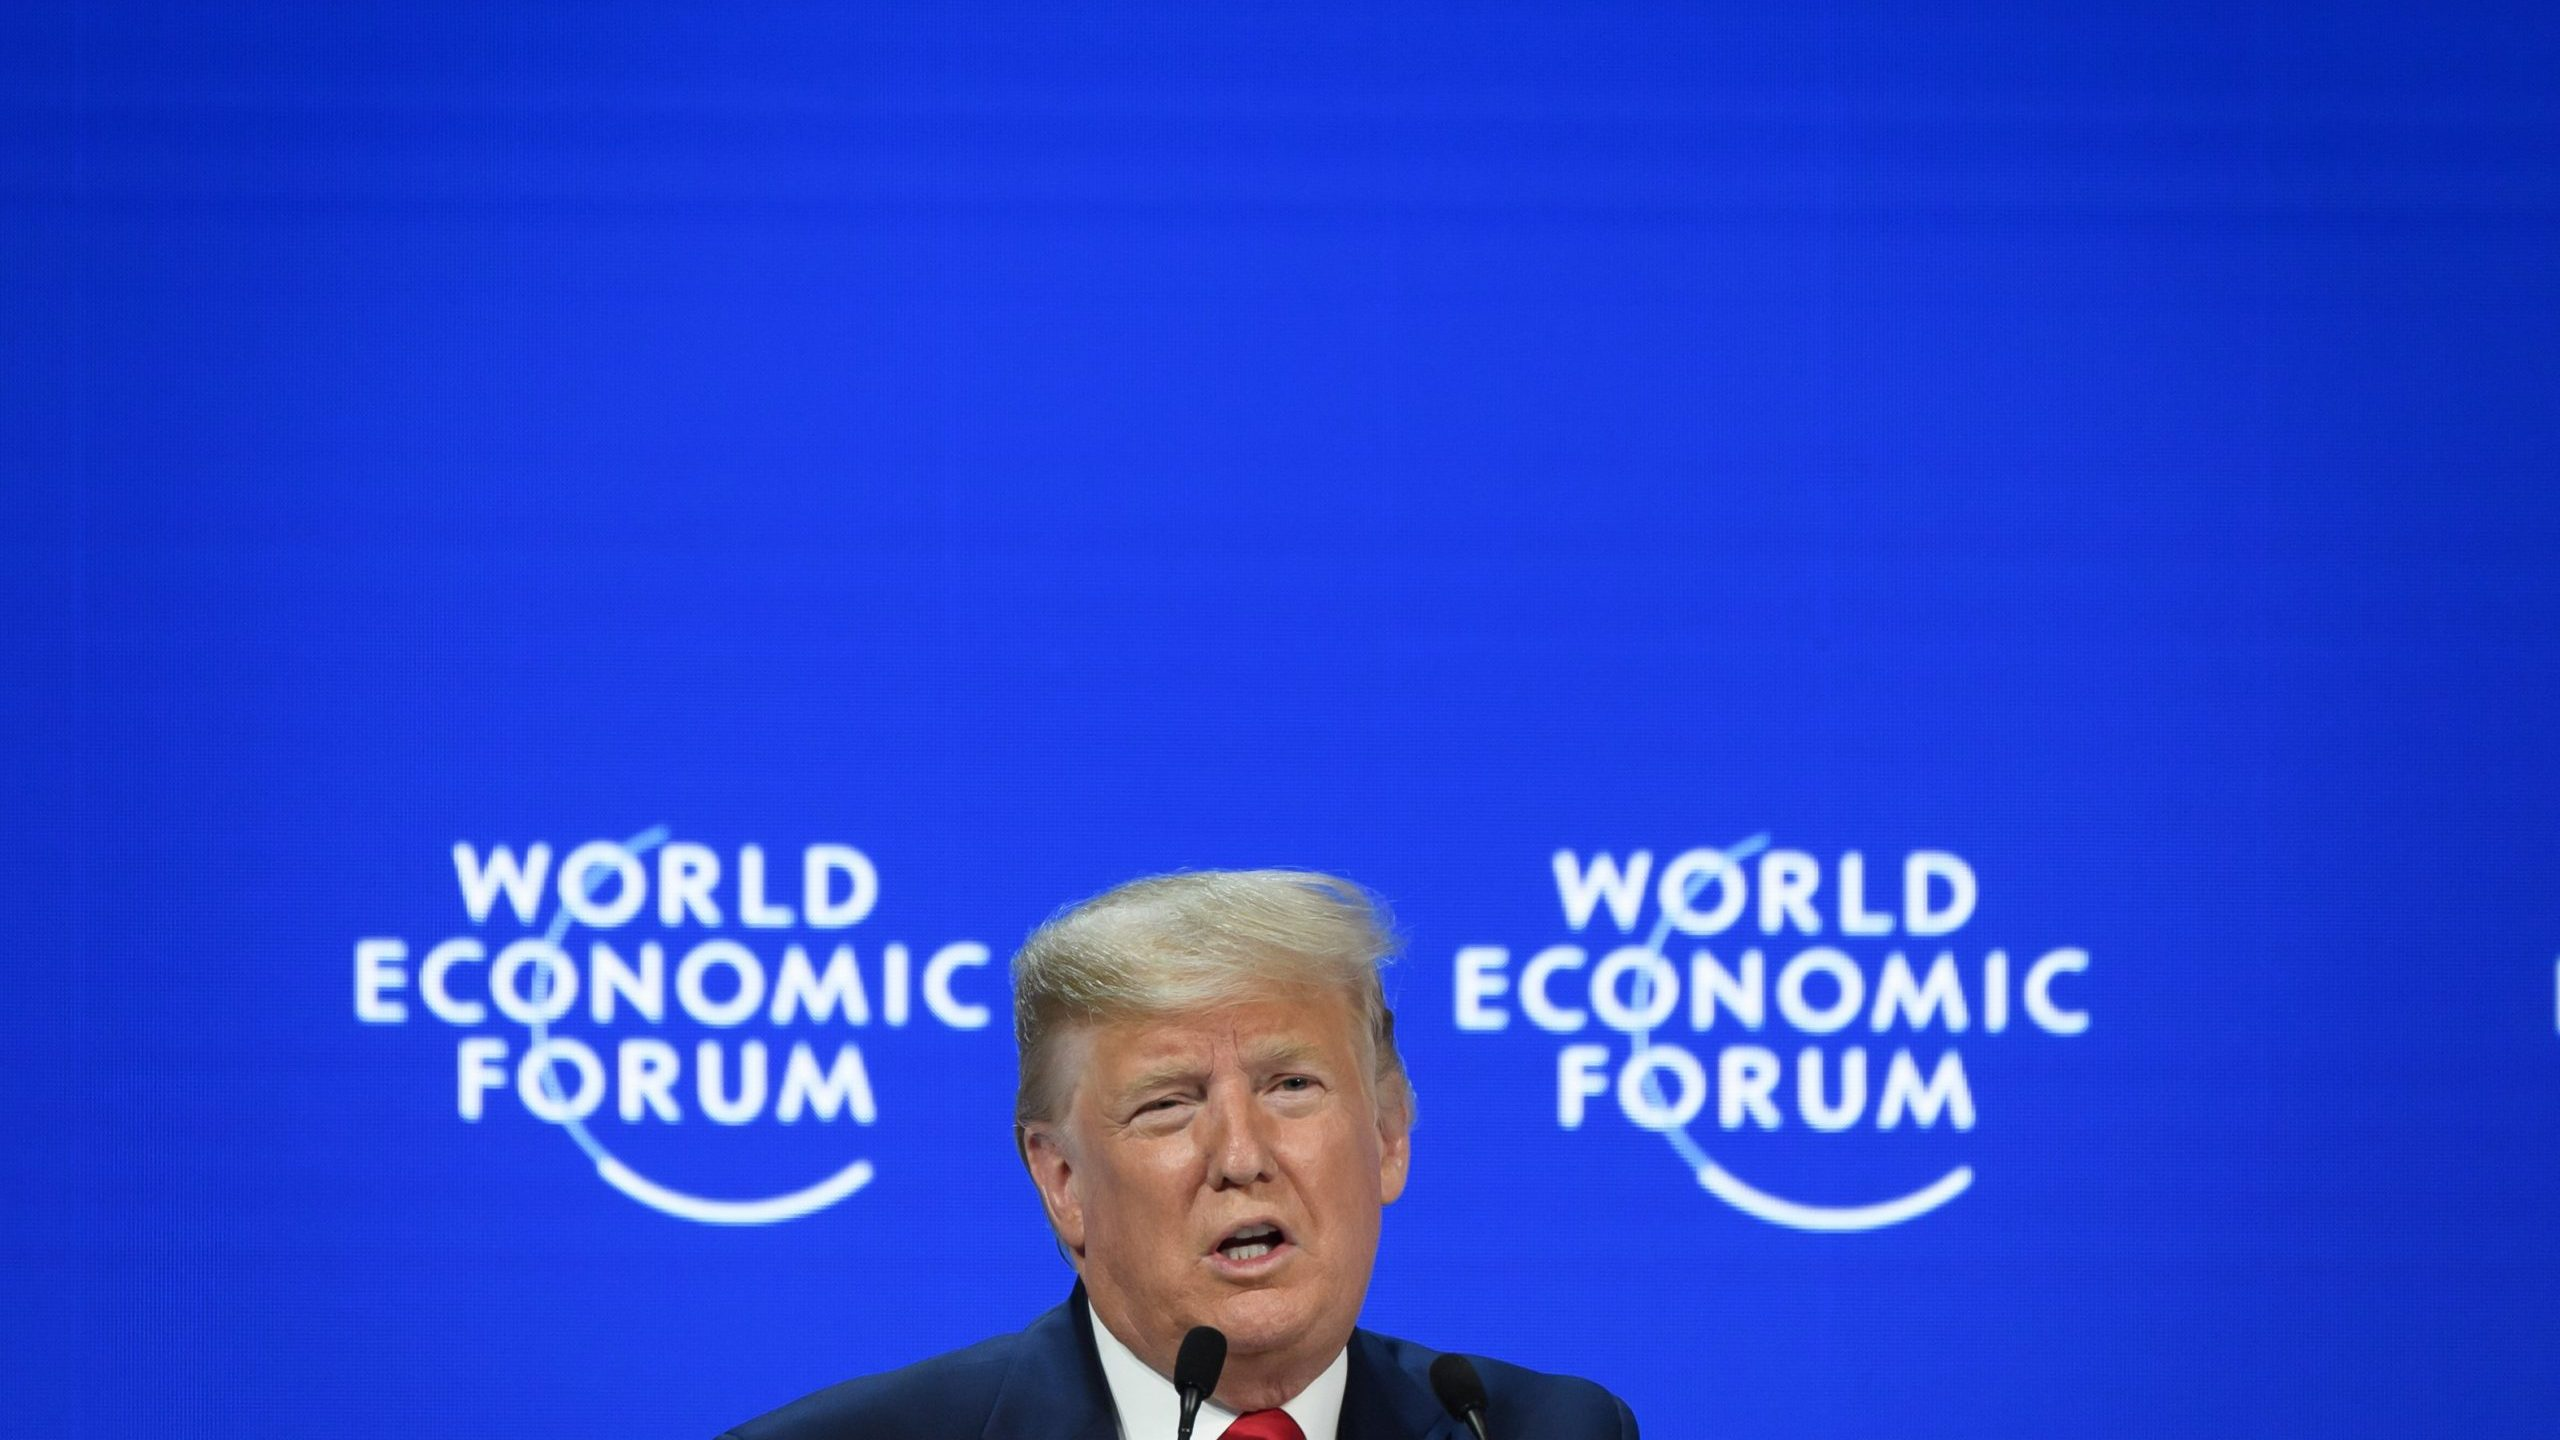 Donald Trump delivers a speech during the World Economic Forum in Davos on Jan. 21, 2020. (Credit: FABRICE COFFRINI/AFP via Getty Images)